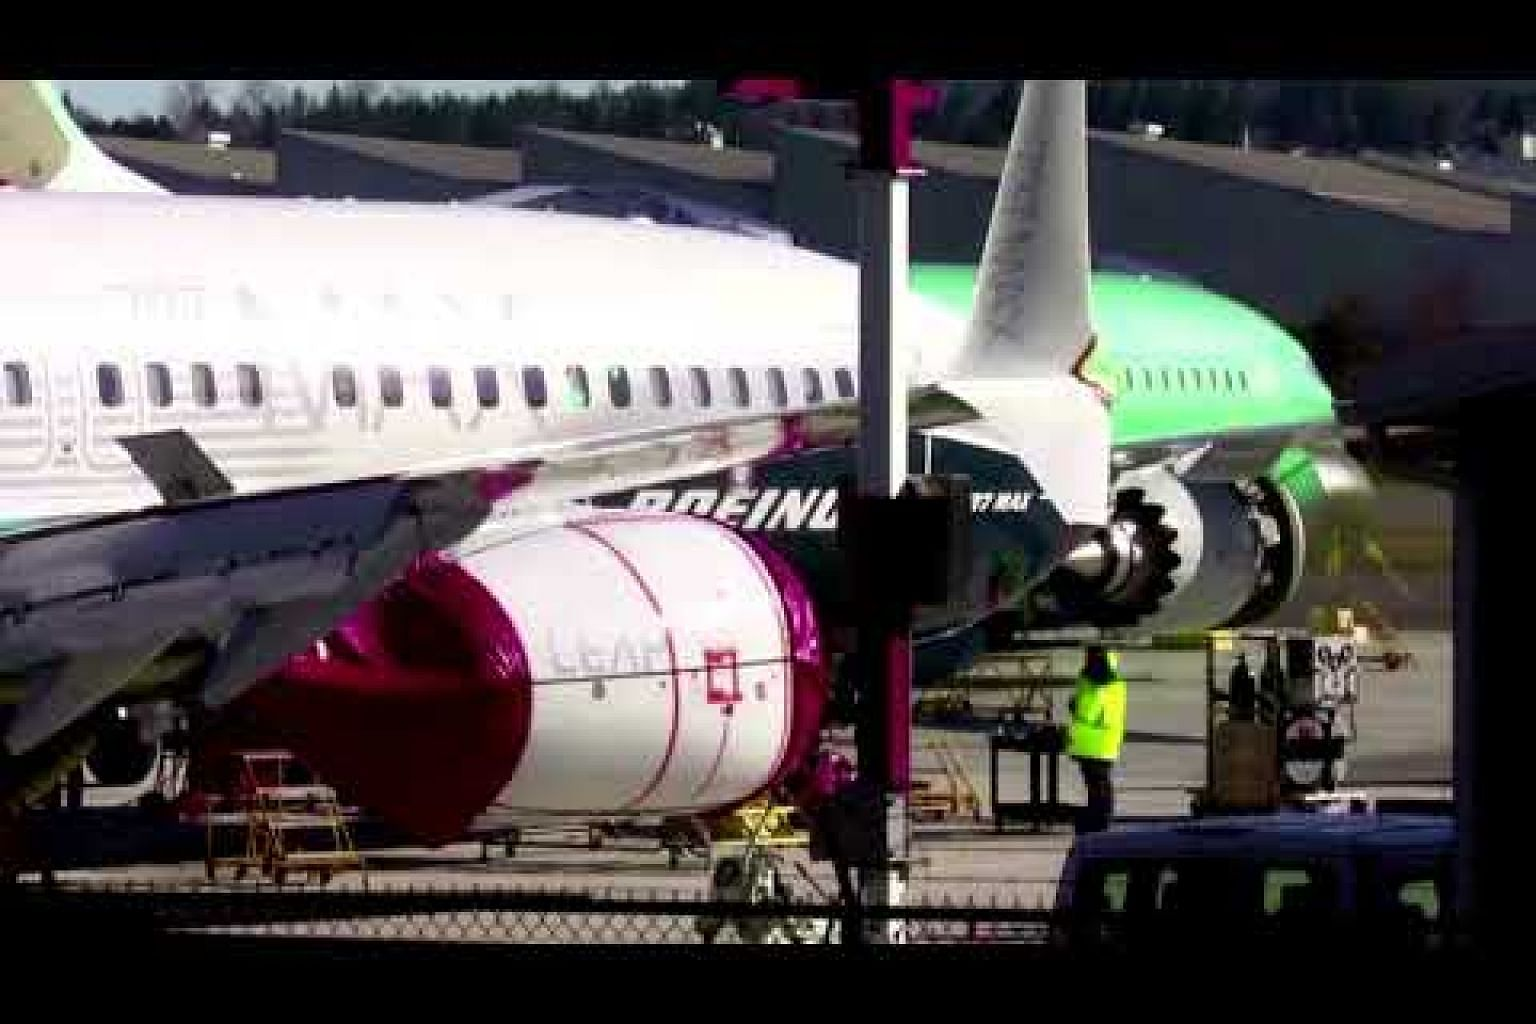 Lawmakers blame Boeing, FAA for 737 Max failures